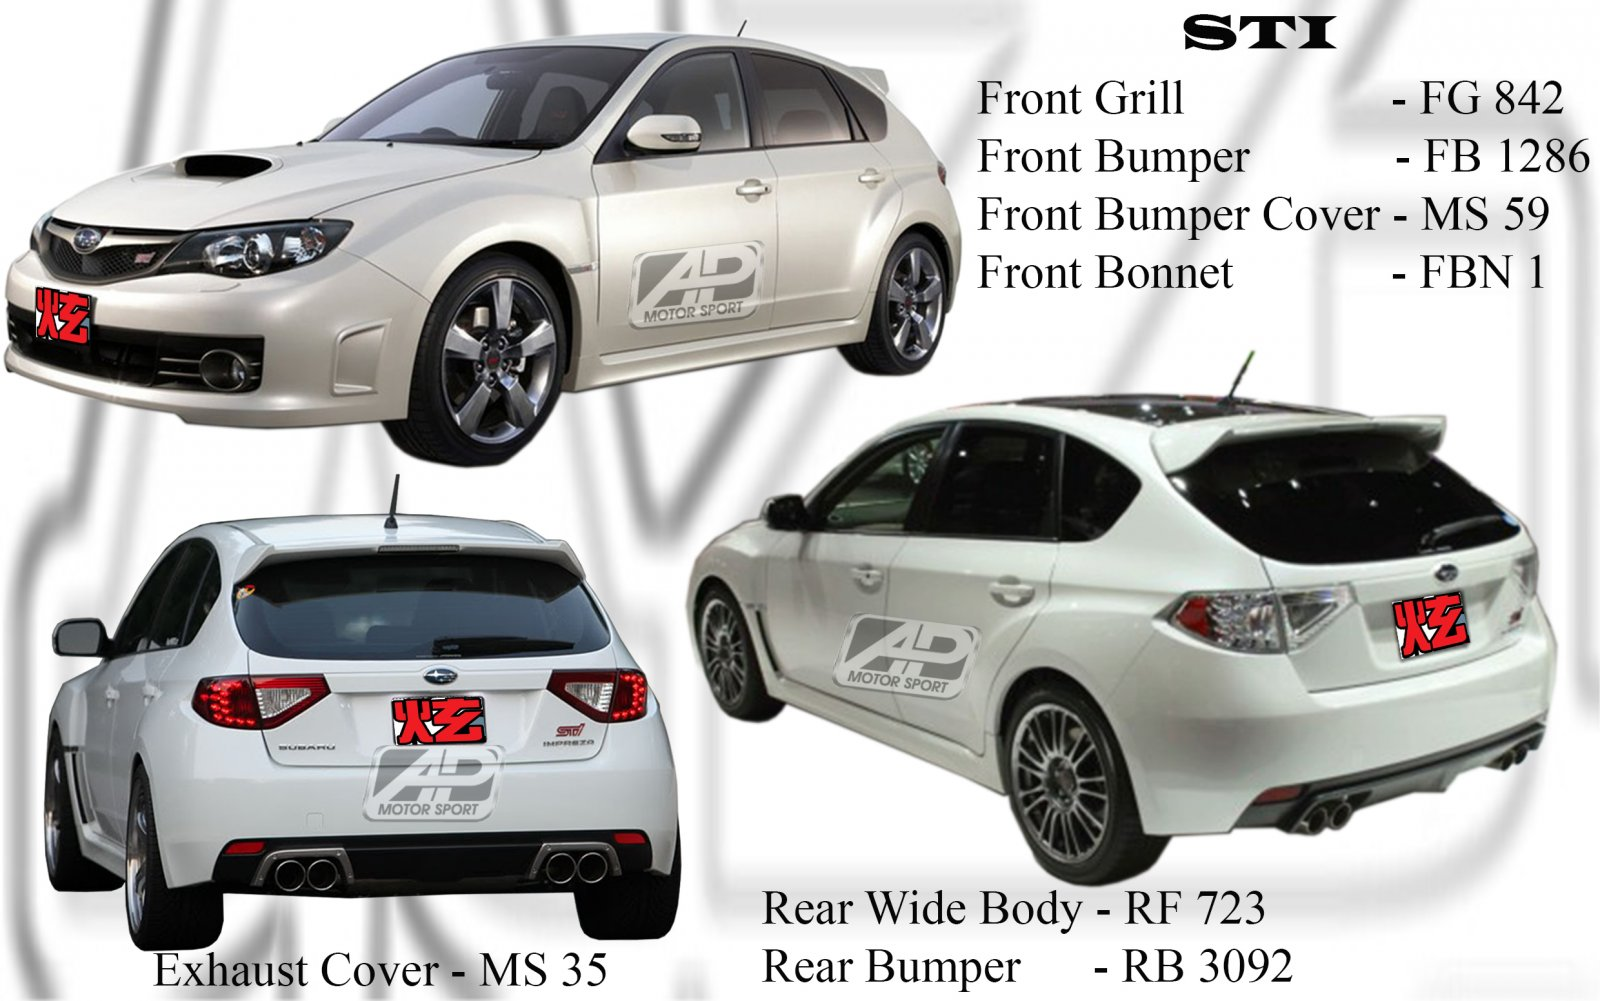 Subaru 2008 Version 10 STI Bodykits